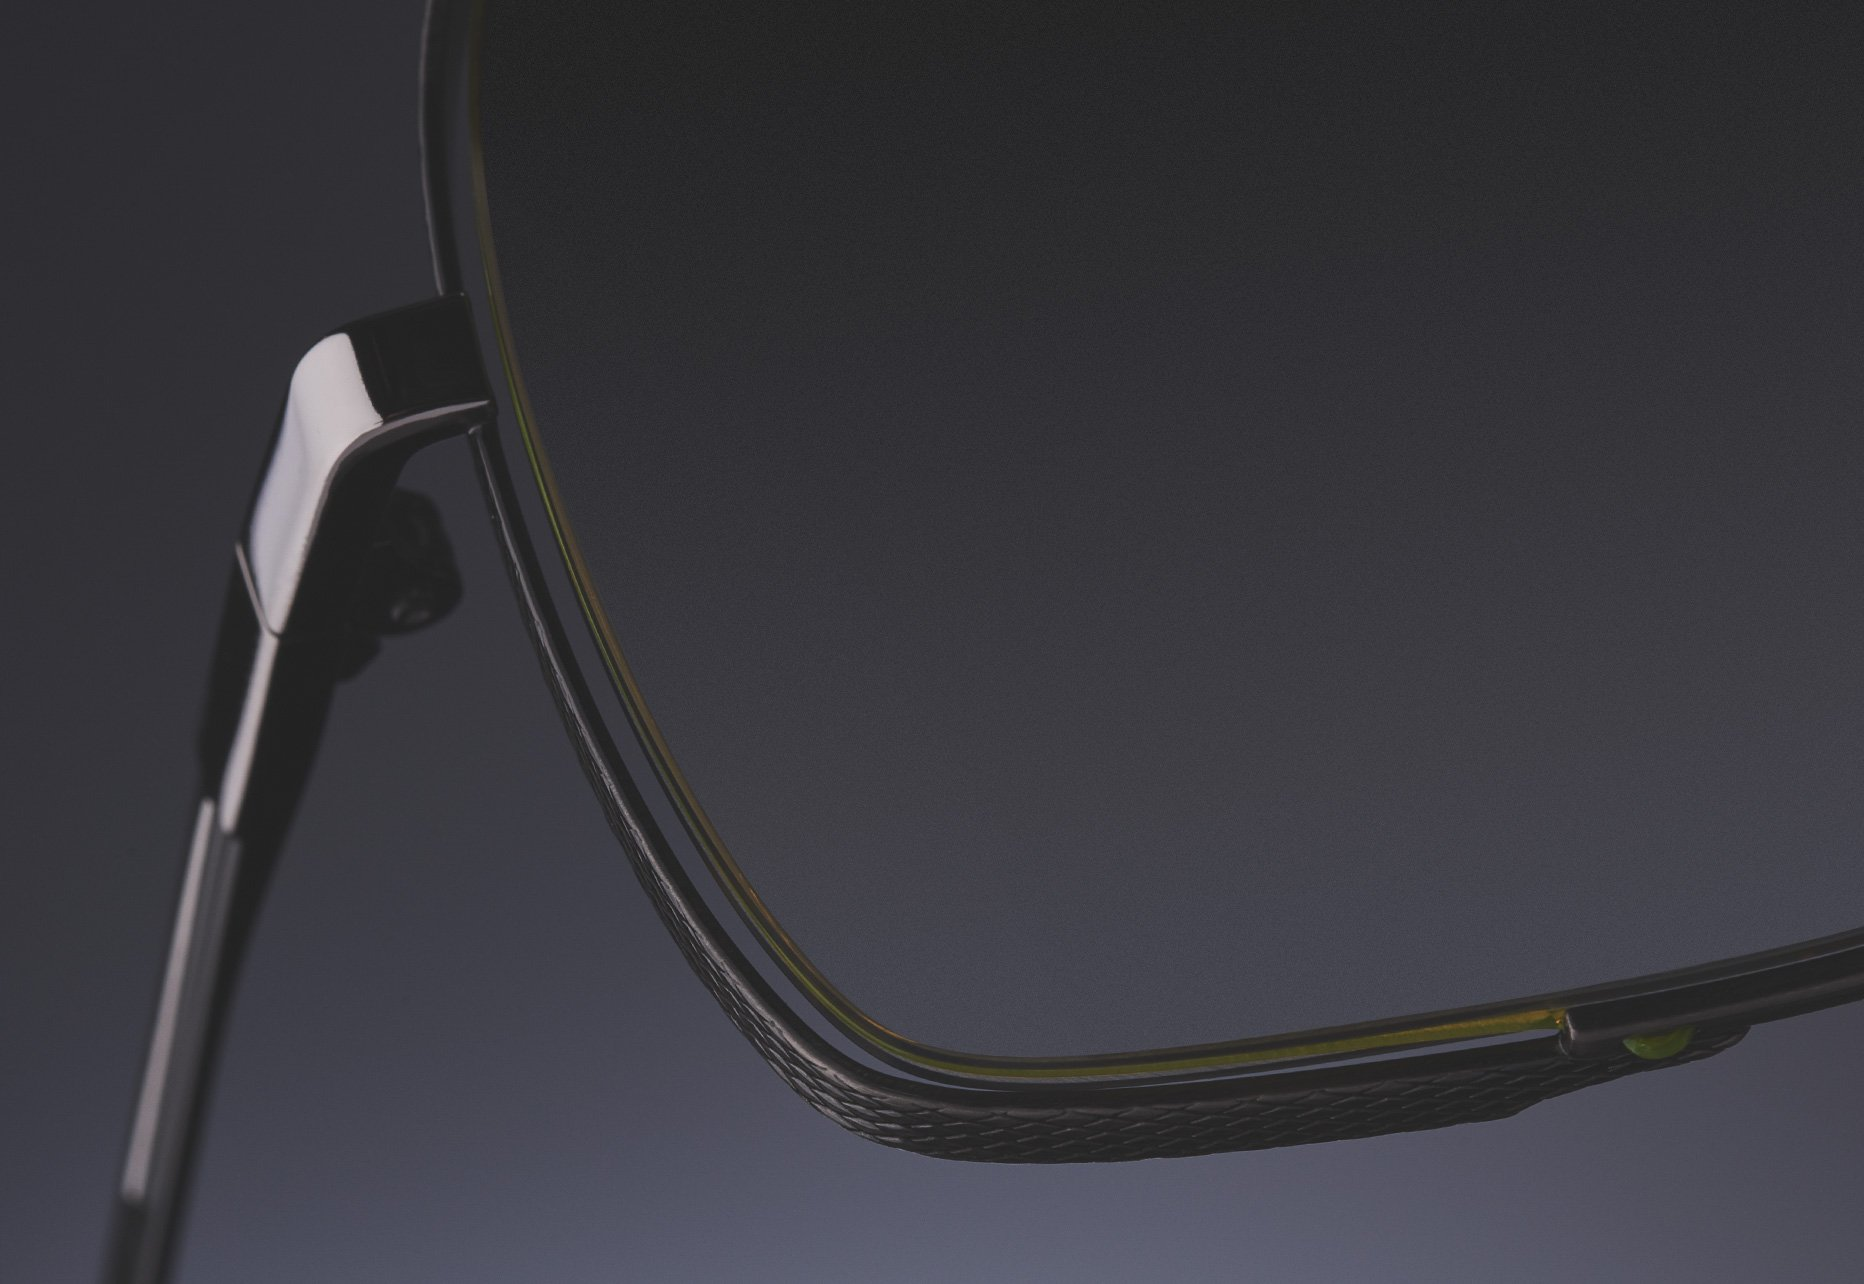 DITA MIDNIGHT SPECIAL FLOATING SIDE LENS RIM WITH NYLOR AND DIAMOND DETAIL